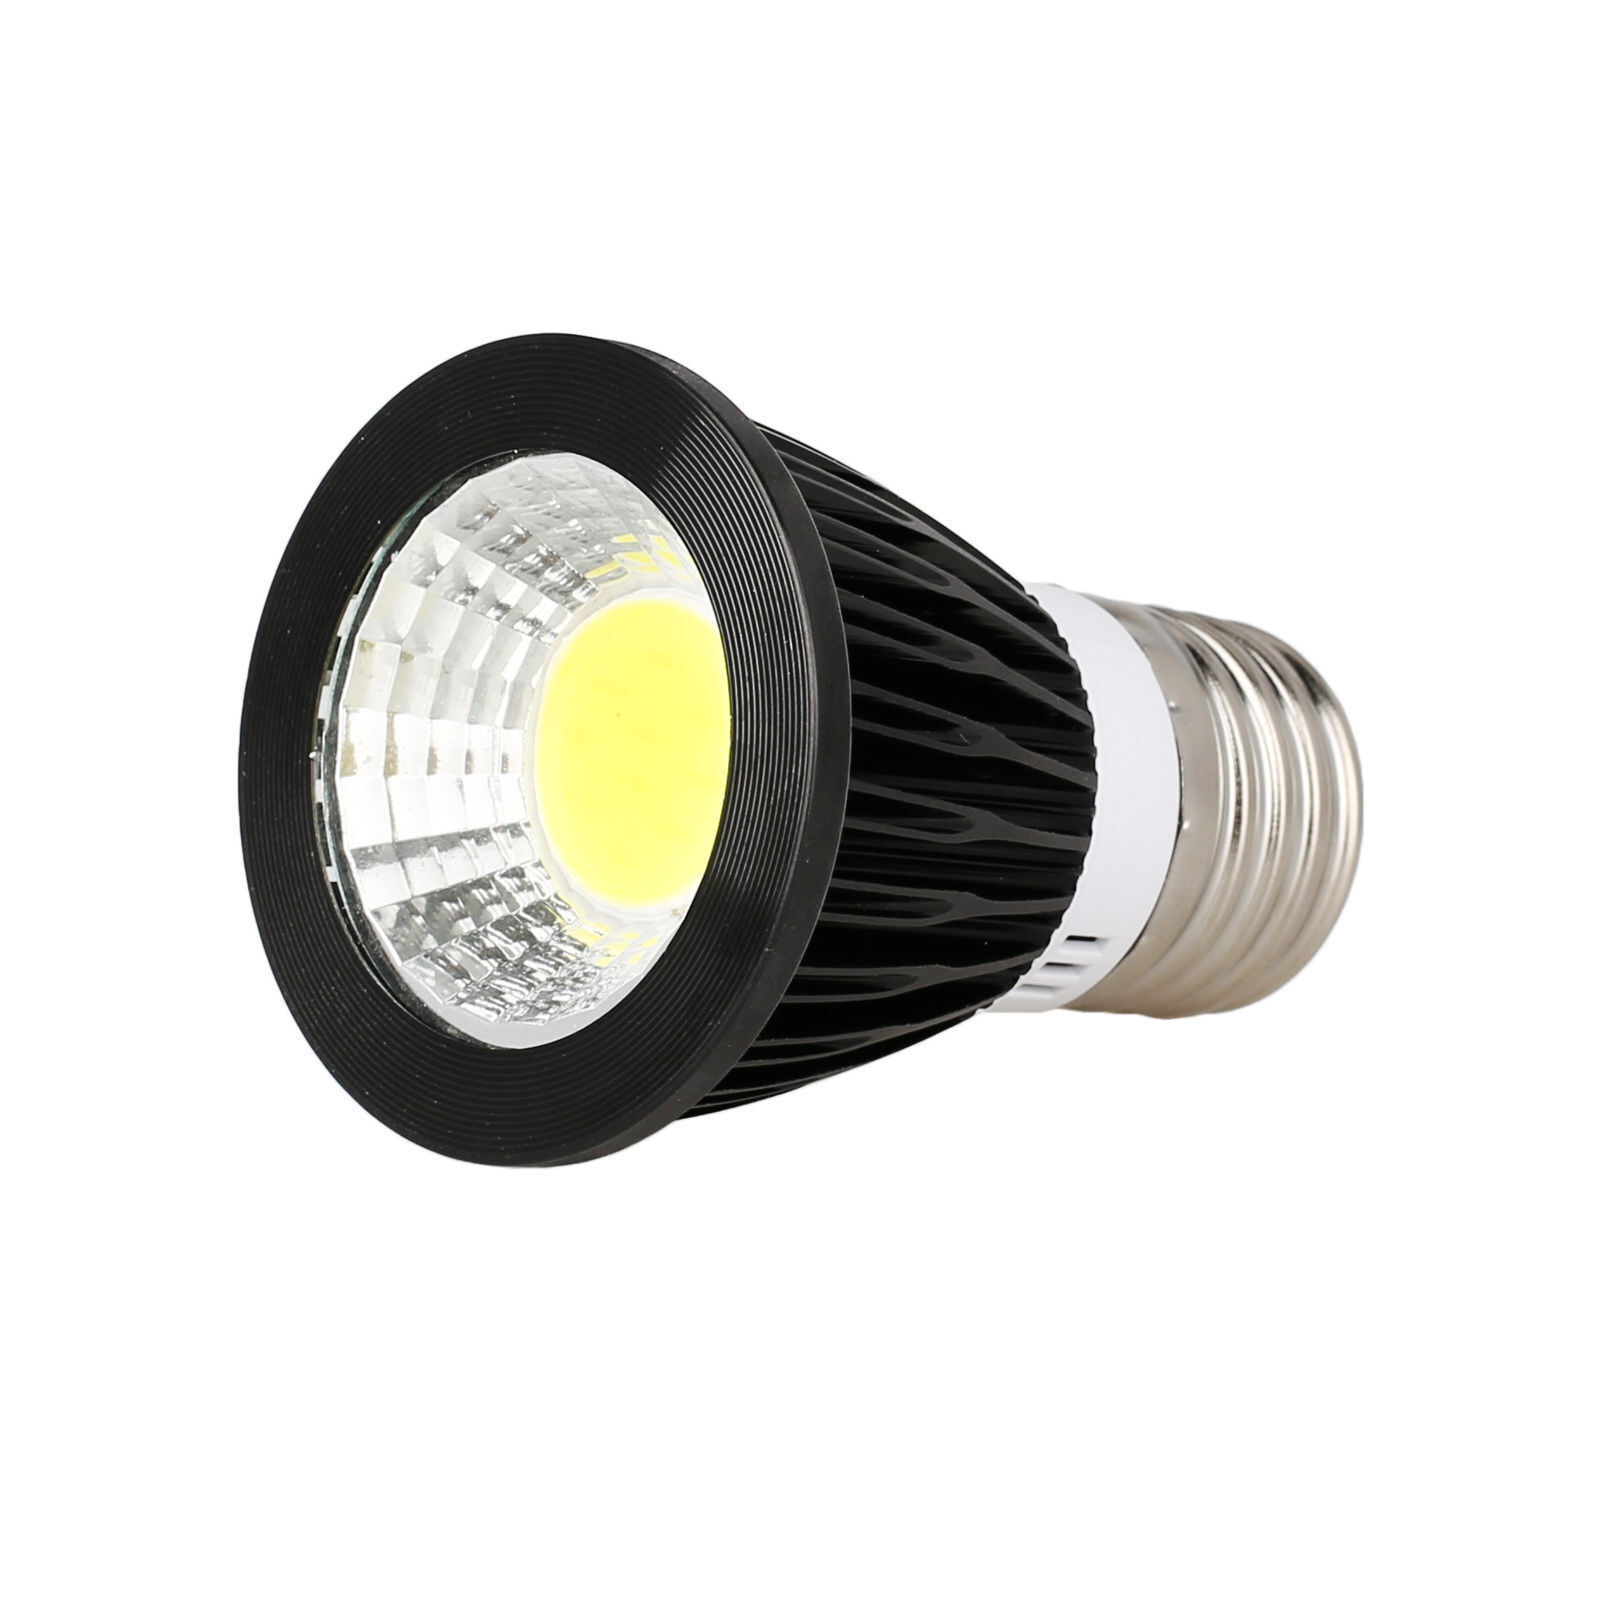 Ultra Bright Mr16 Gu10 E27 E14 Dimmable 6w 9w 12w Led Cob Spot Light Bulbs Cree Dimmable Cob Led Spot Light Bulbs Gu10 Mr16 E27 6w 9w 12w